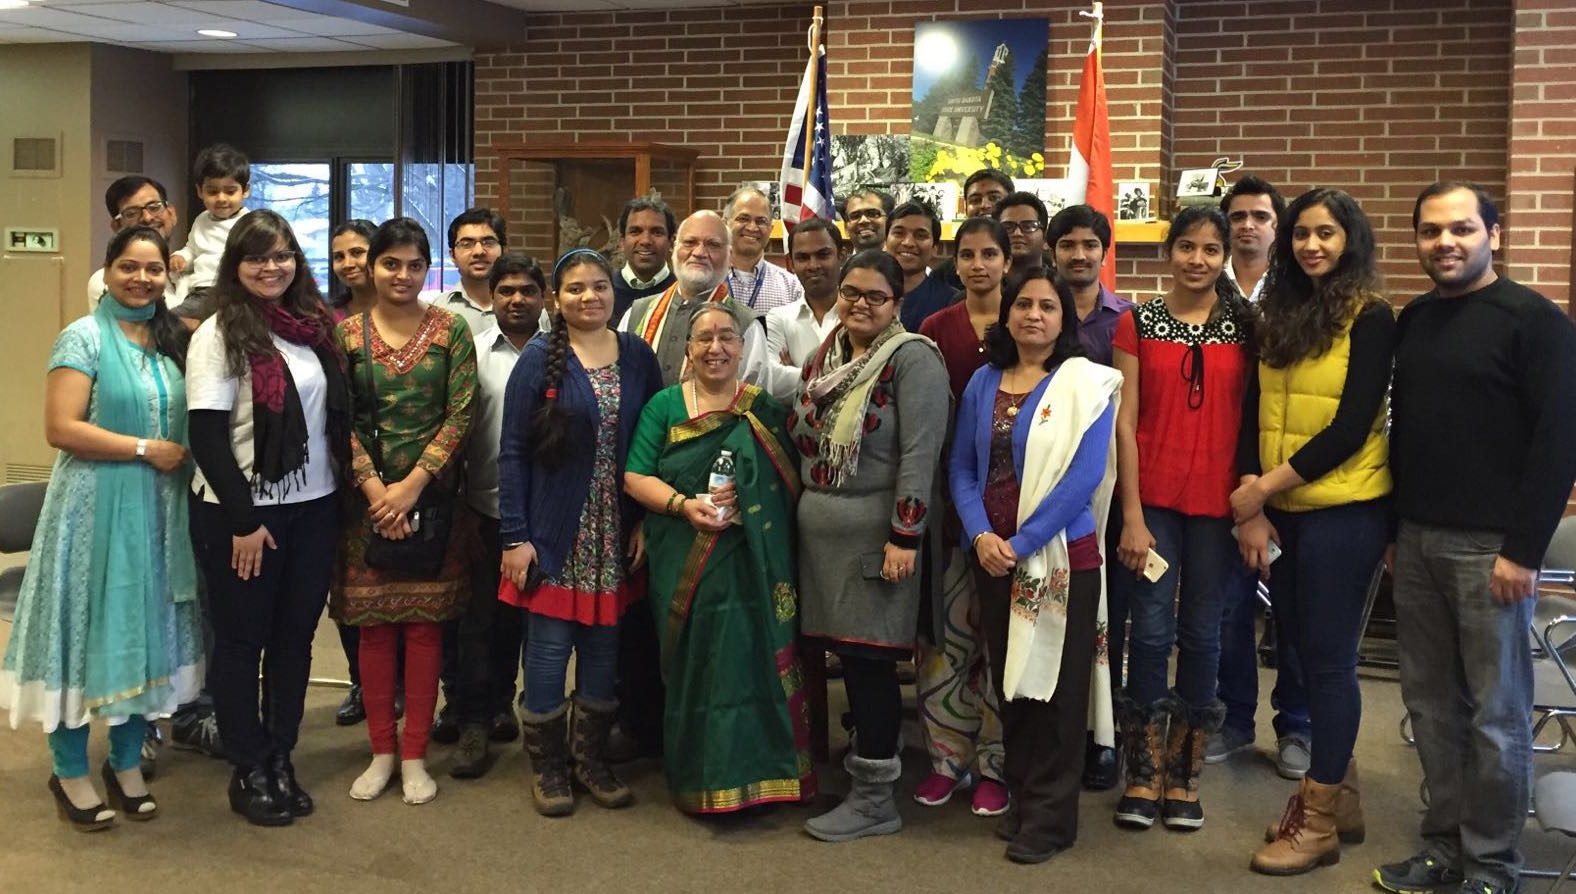 Members of the Indian Students' Association host India Night each year, which draws 350-400 people.